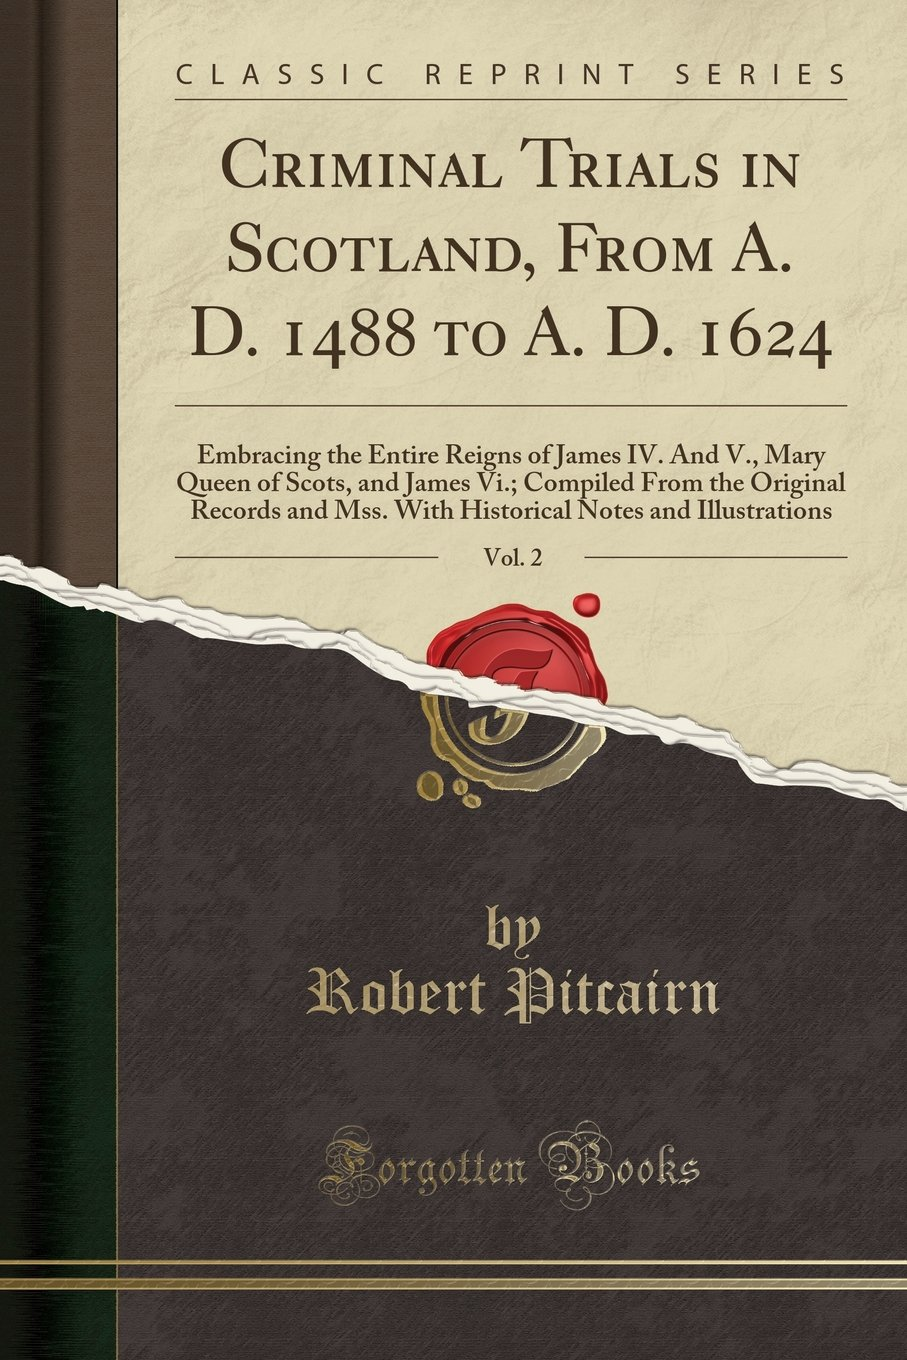 Download Criminal Trials in Scotland, From A. D. 1488 to A. D. 1624, Vol. 2: Embracing the Entire Reigns of James IV. And V., Mary Queen of Scots, and James ... Notes and Illustrations (Classic Reprint) pdf